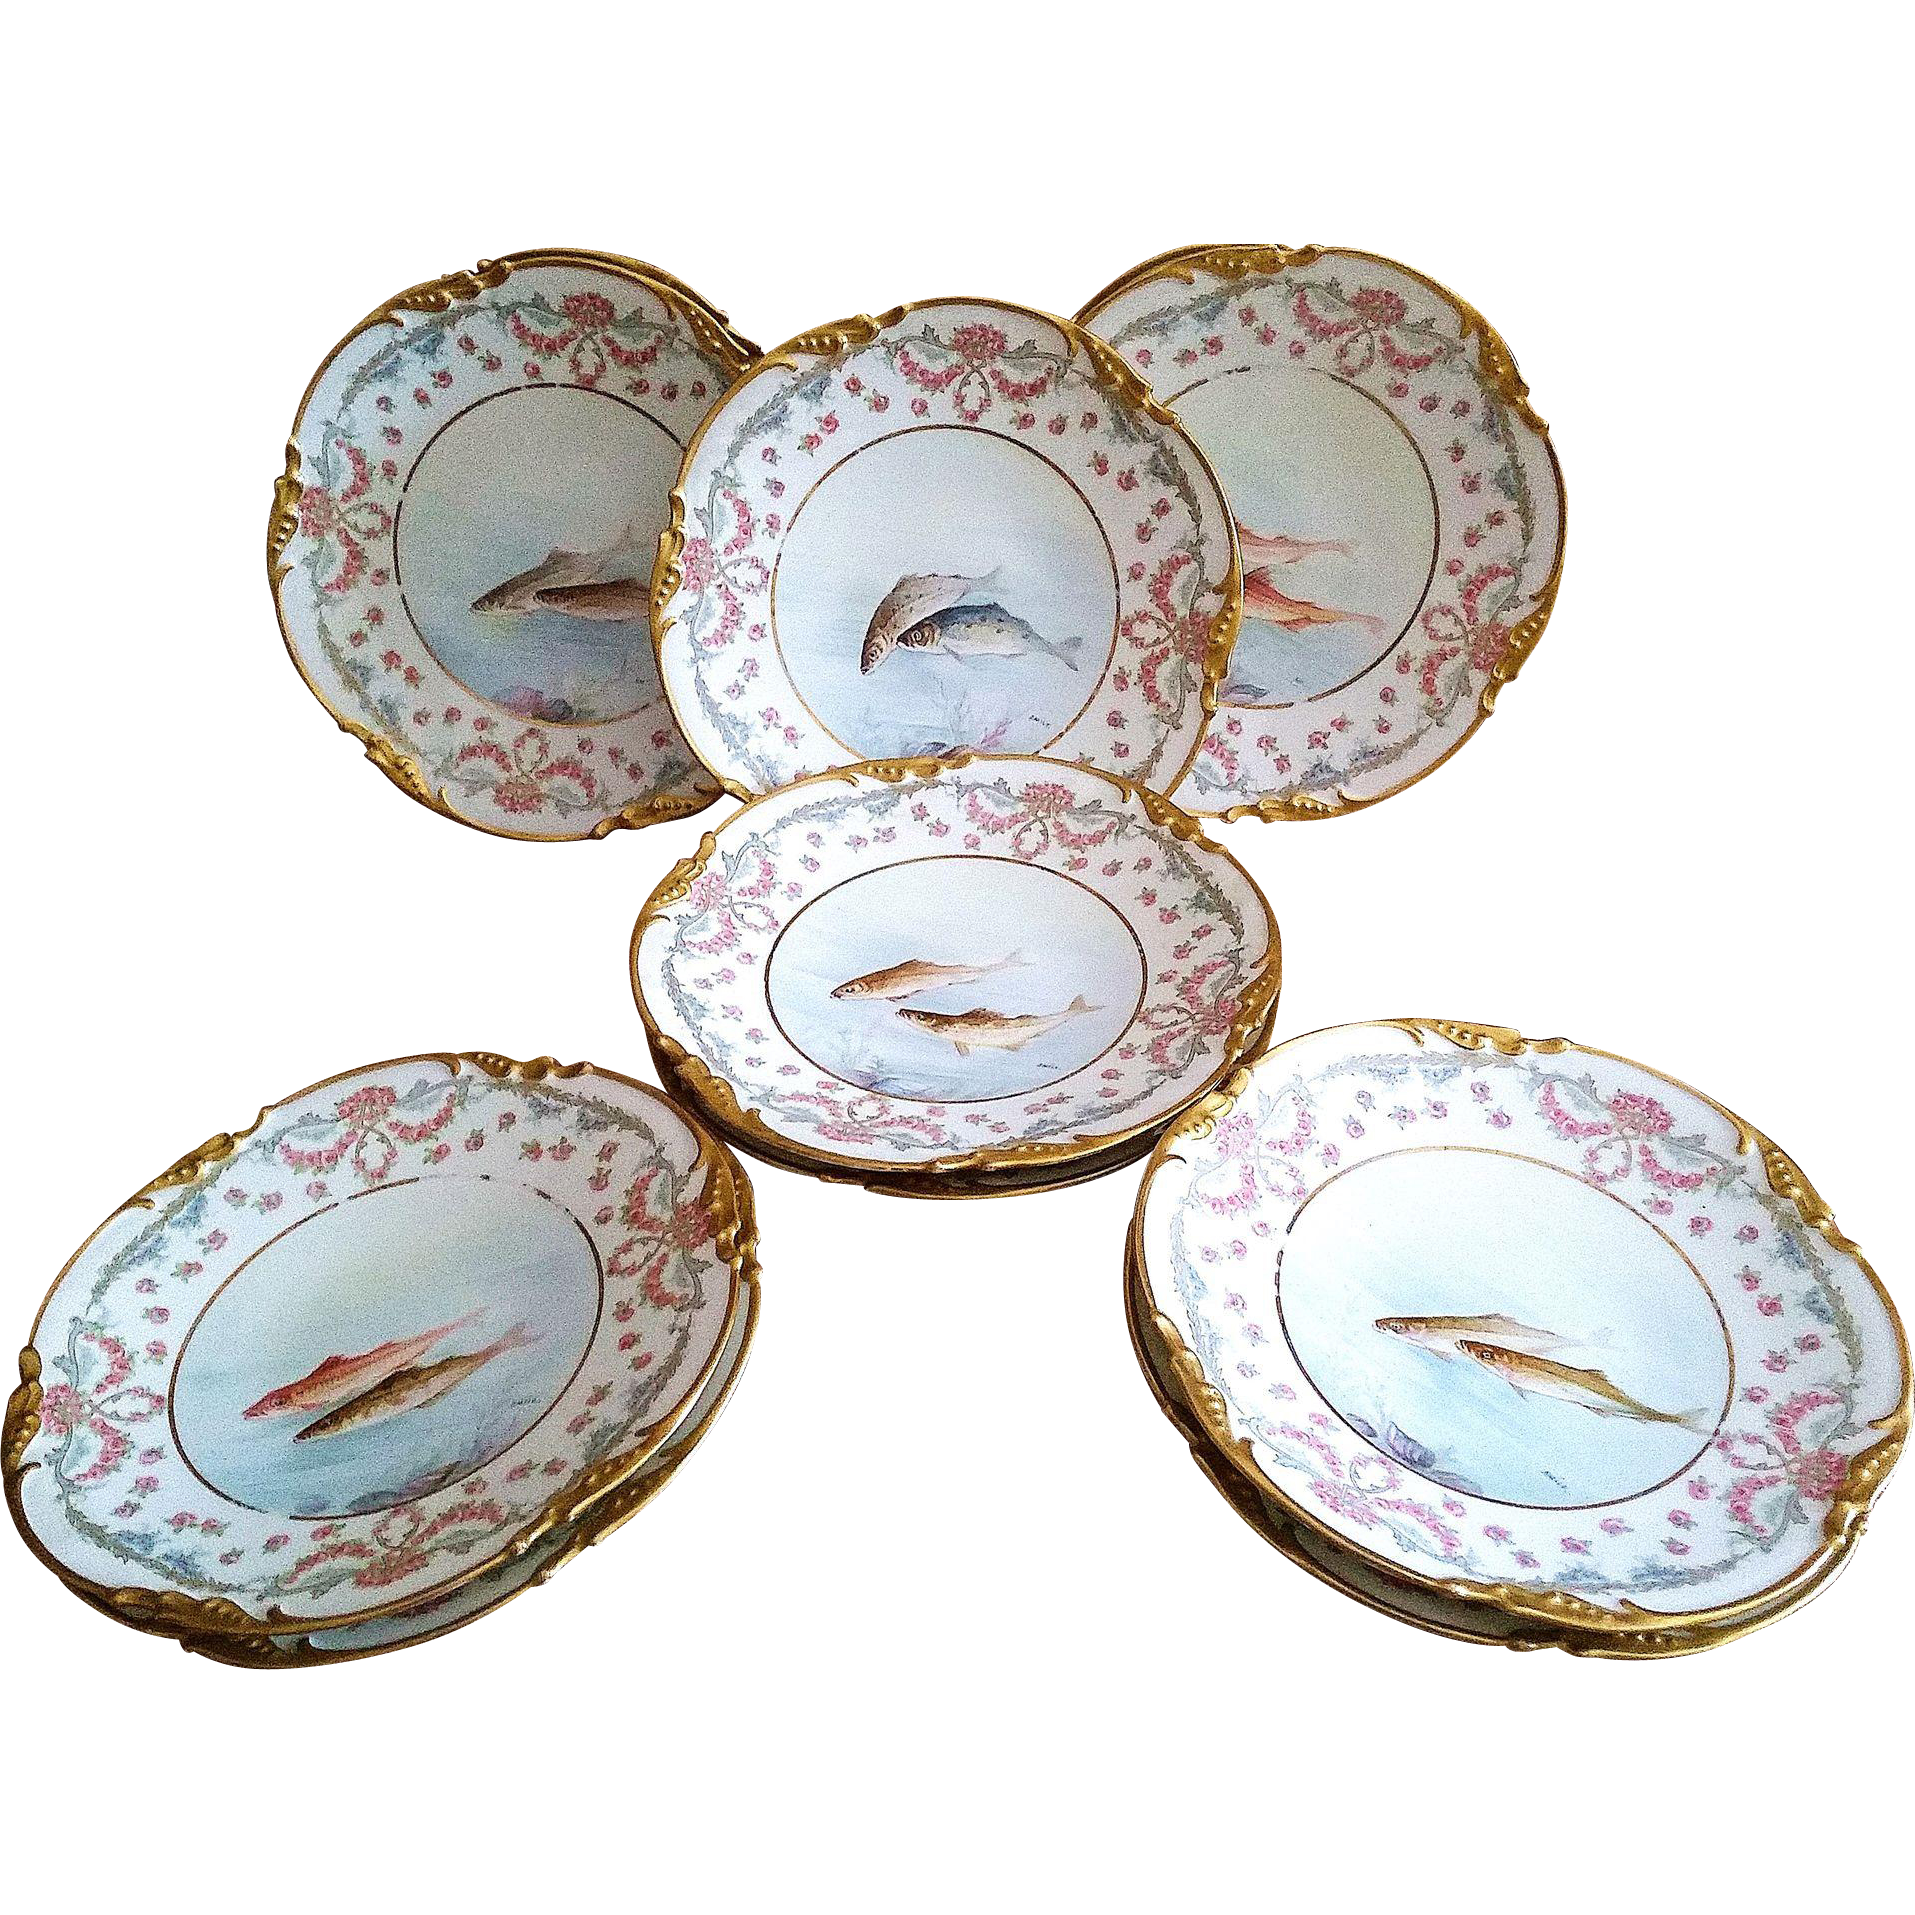 """Fabulous Jean Pouyat Limoges France 1900's Hand Painted """"Sea Fish & Chain of Red Roses"""" Game Set of 11 Scenic Scallop Plates by the Listed French Artist, """"Emile"""""""